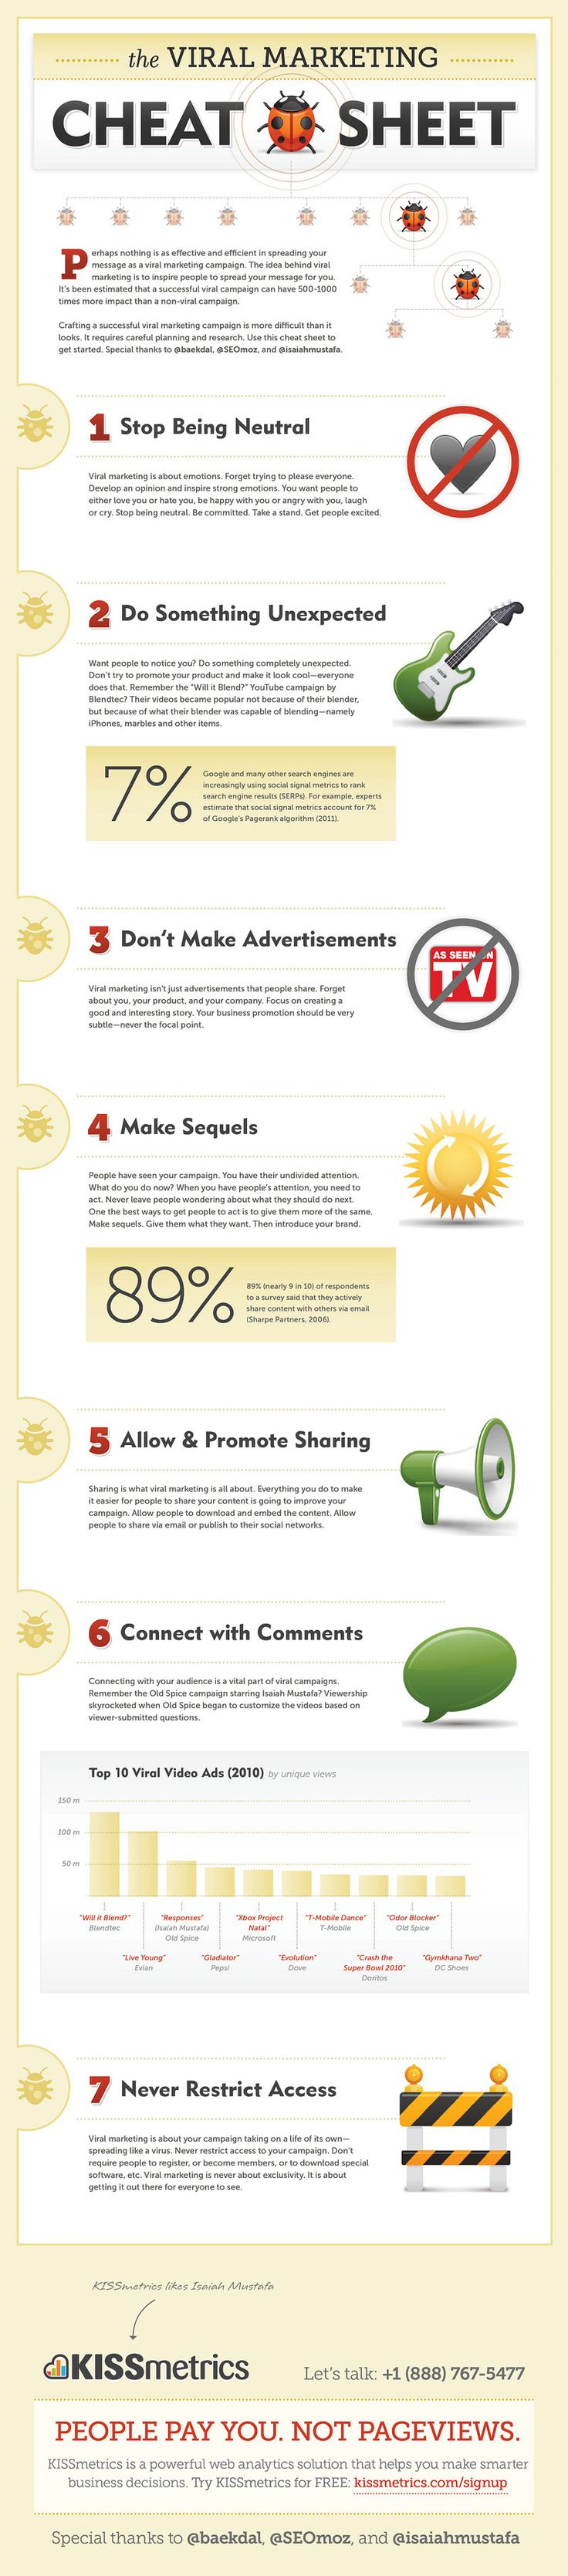 Viral-Marketing-Cheat-Sheet-infographic2